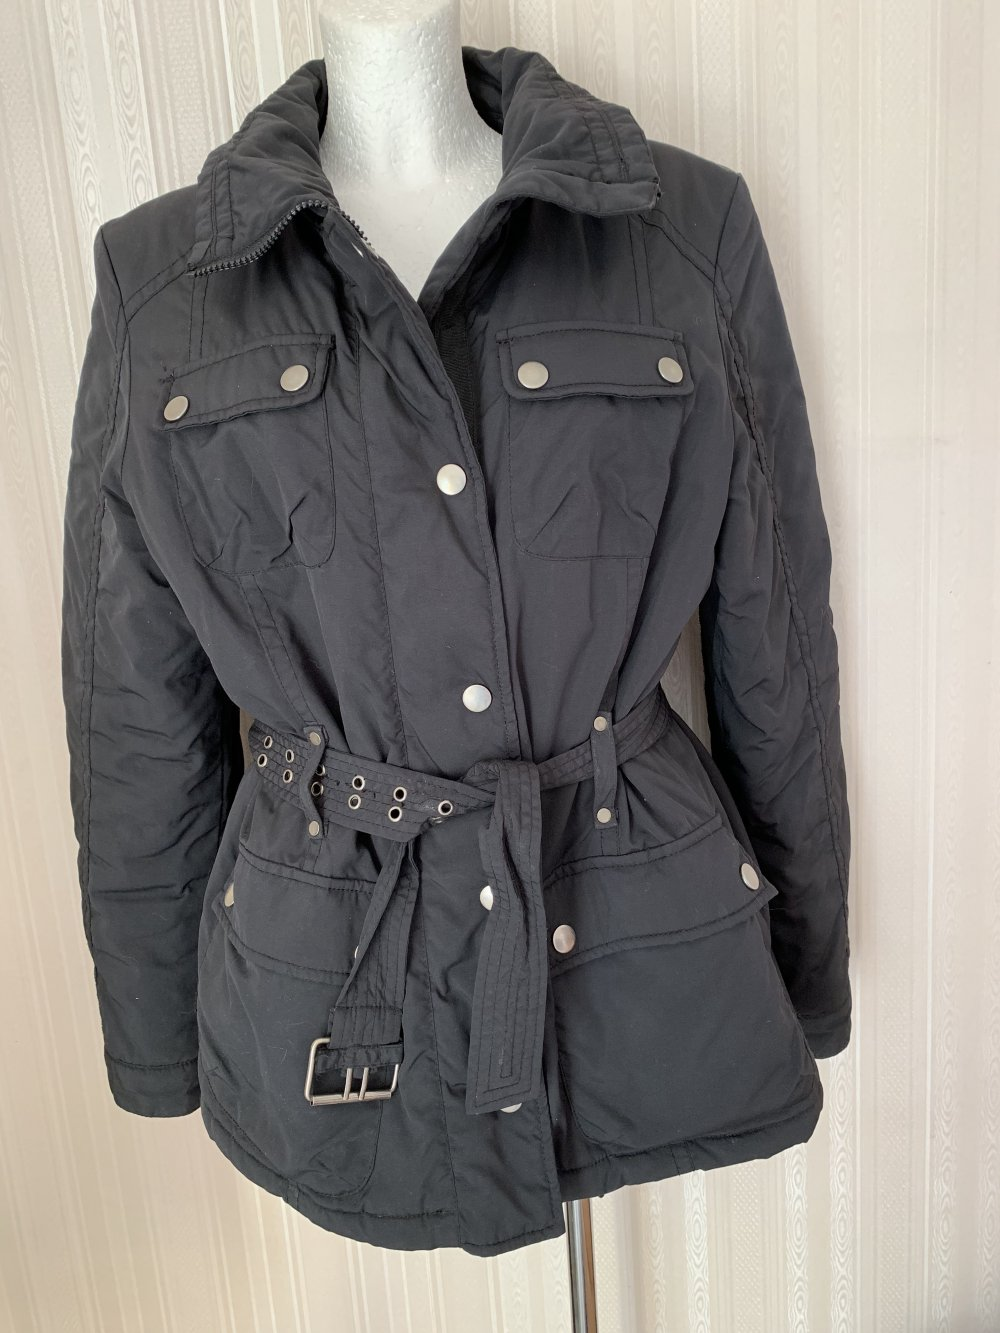 cheaper f804d 78be6 schwarze Winterjacke, In Linea Firenze, Größe 42